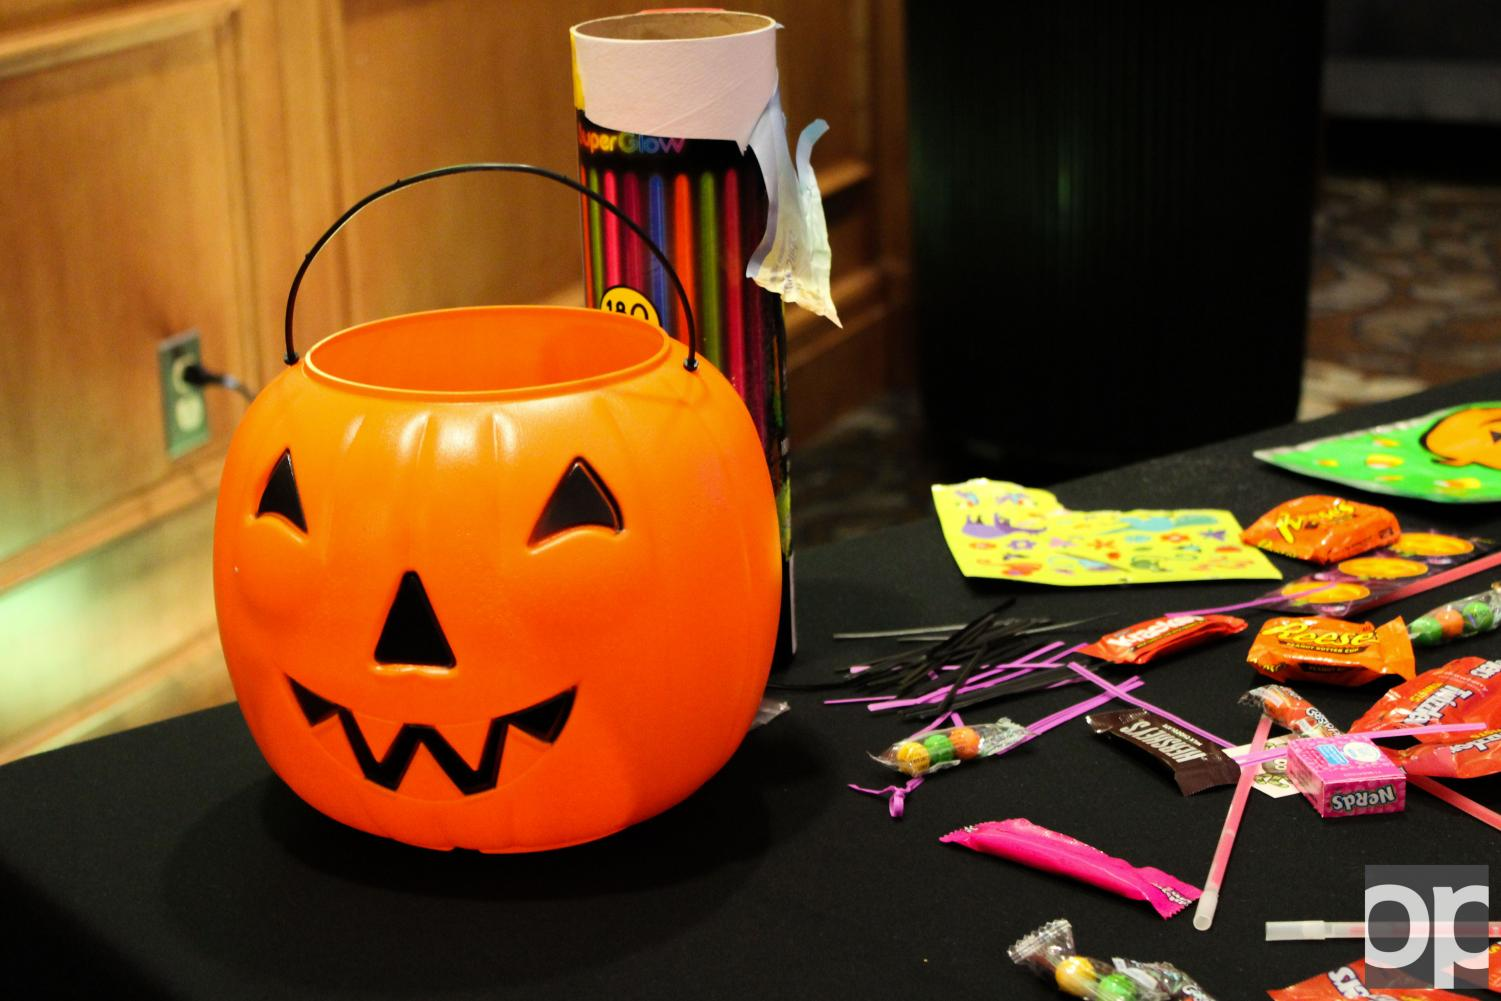 There was plenty of spooky activities for thrill-seekers and candy lovers at Oakland.